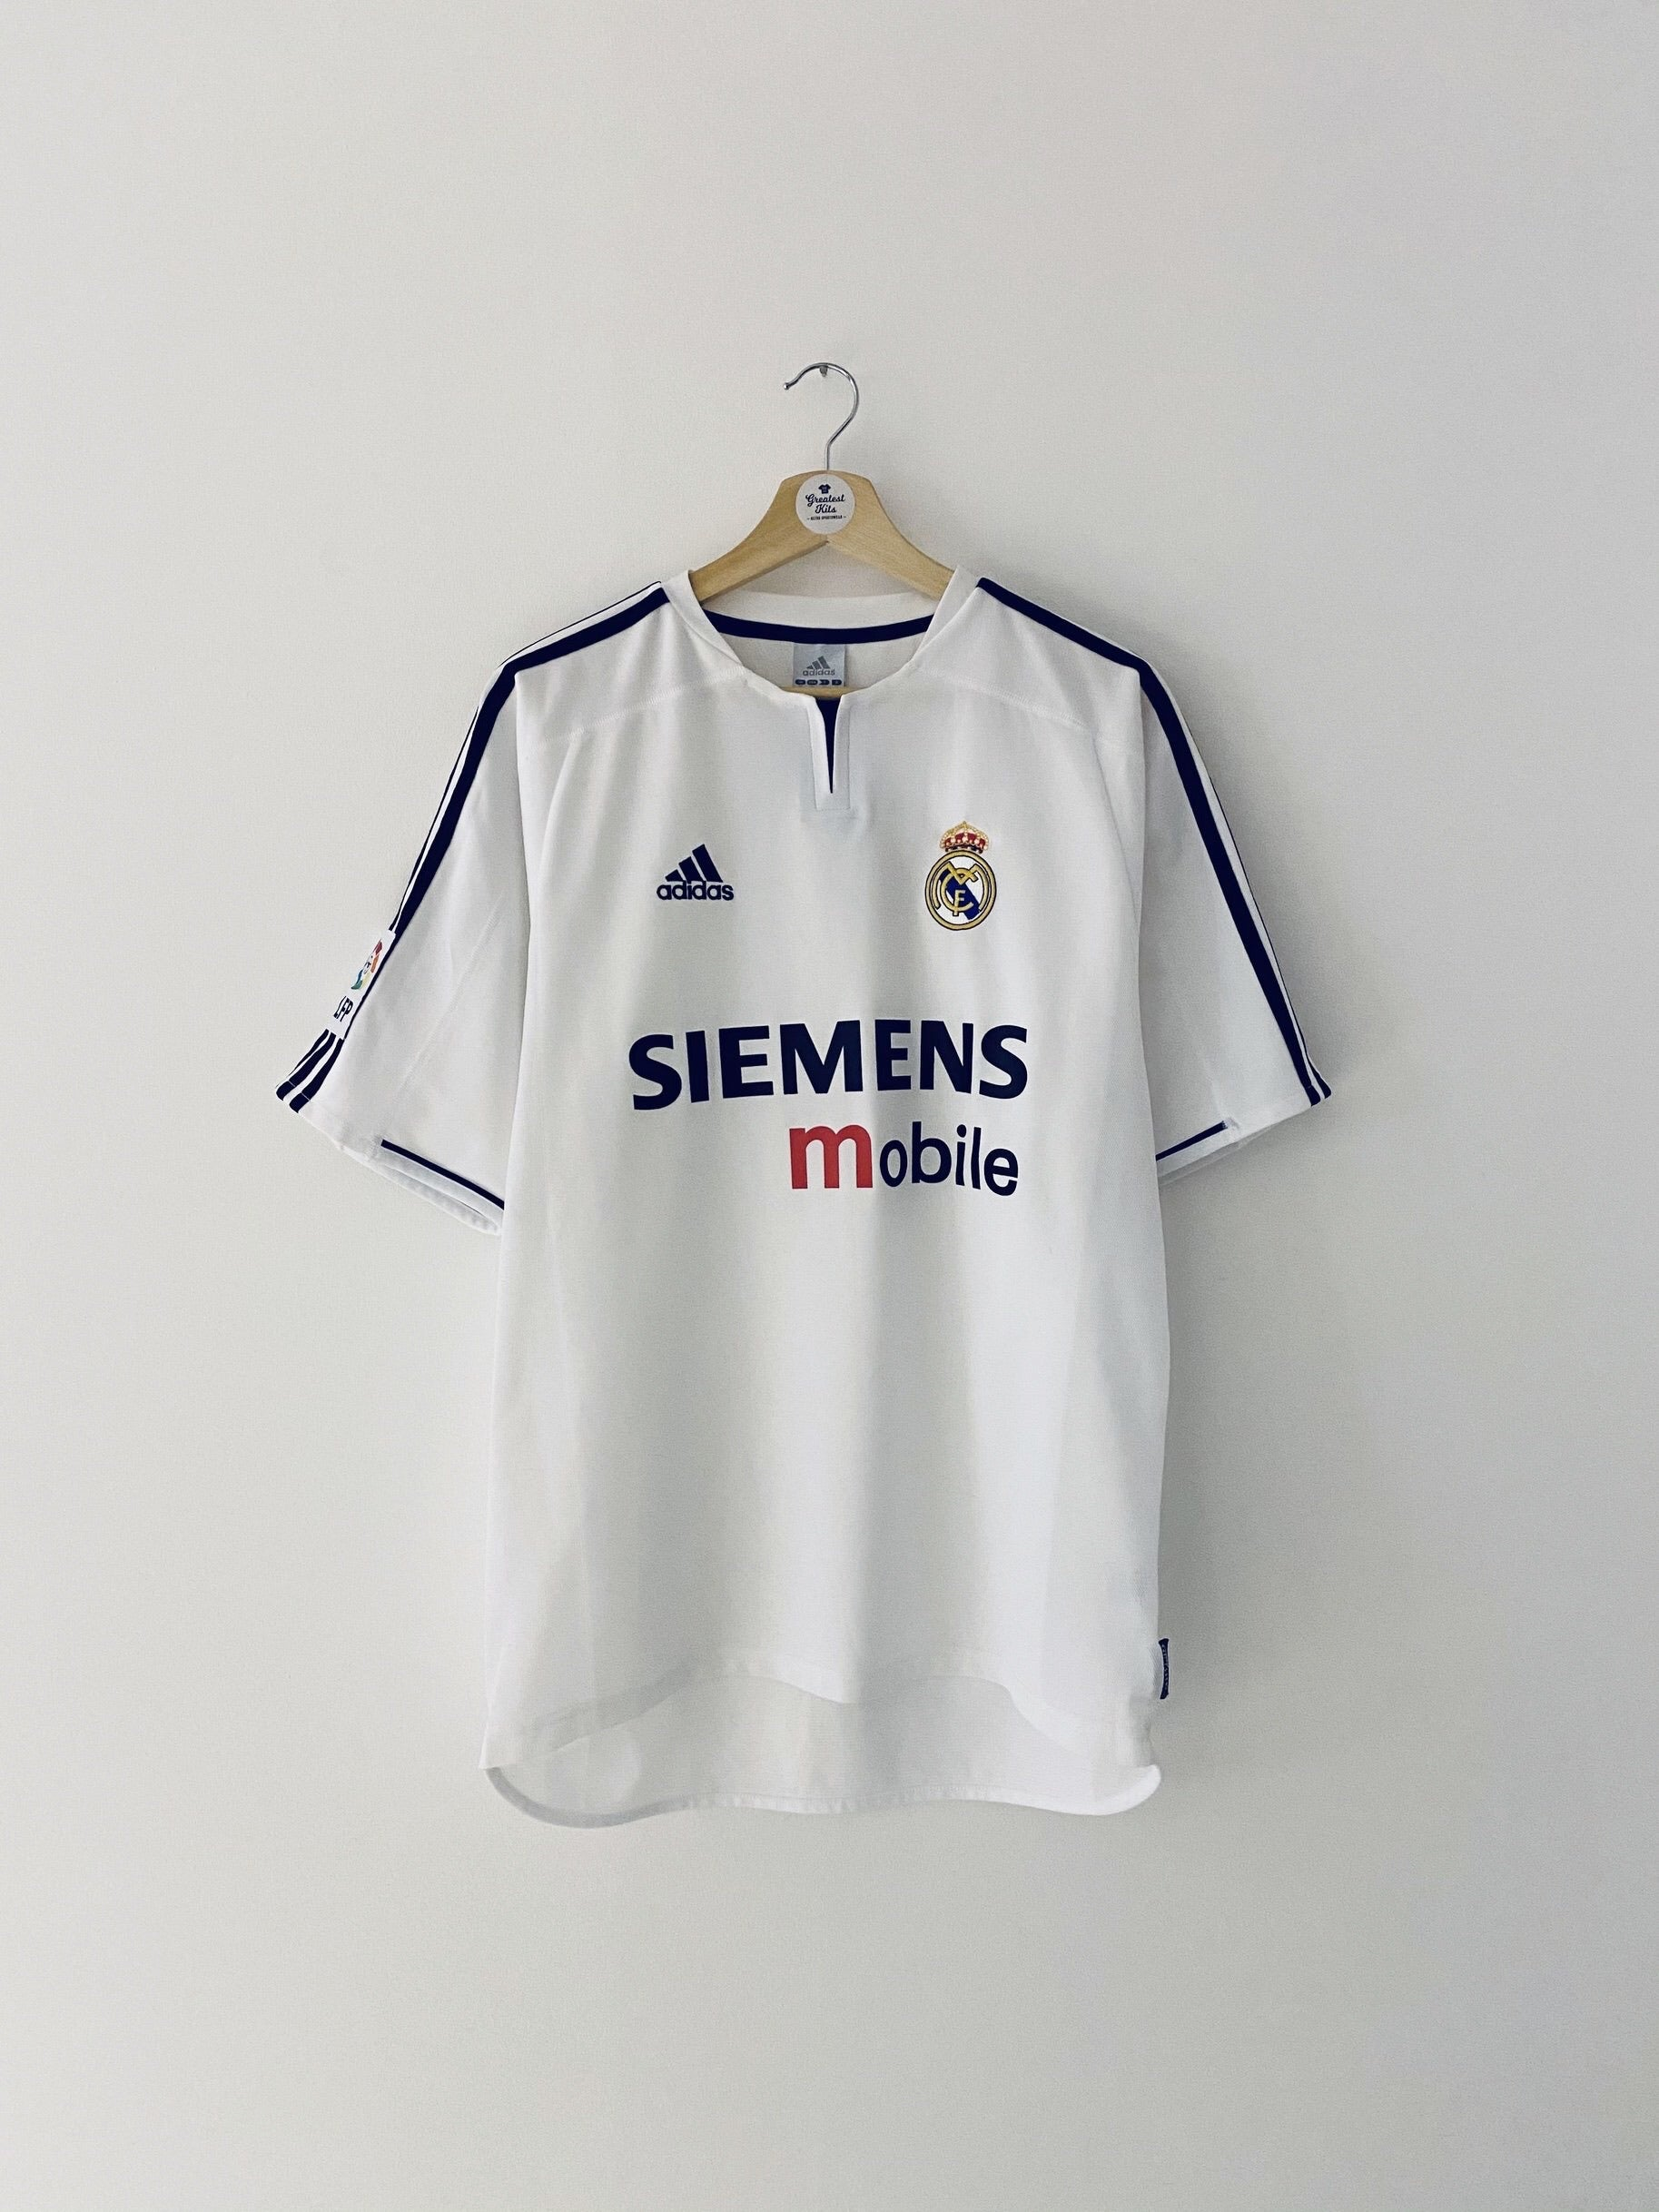 2003/04 Real Madrid Home Shirt (M) 9.5/10